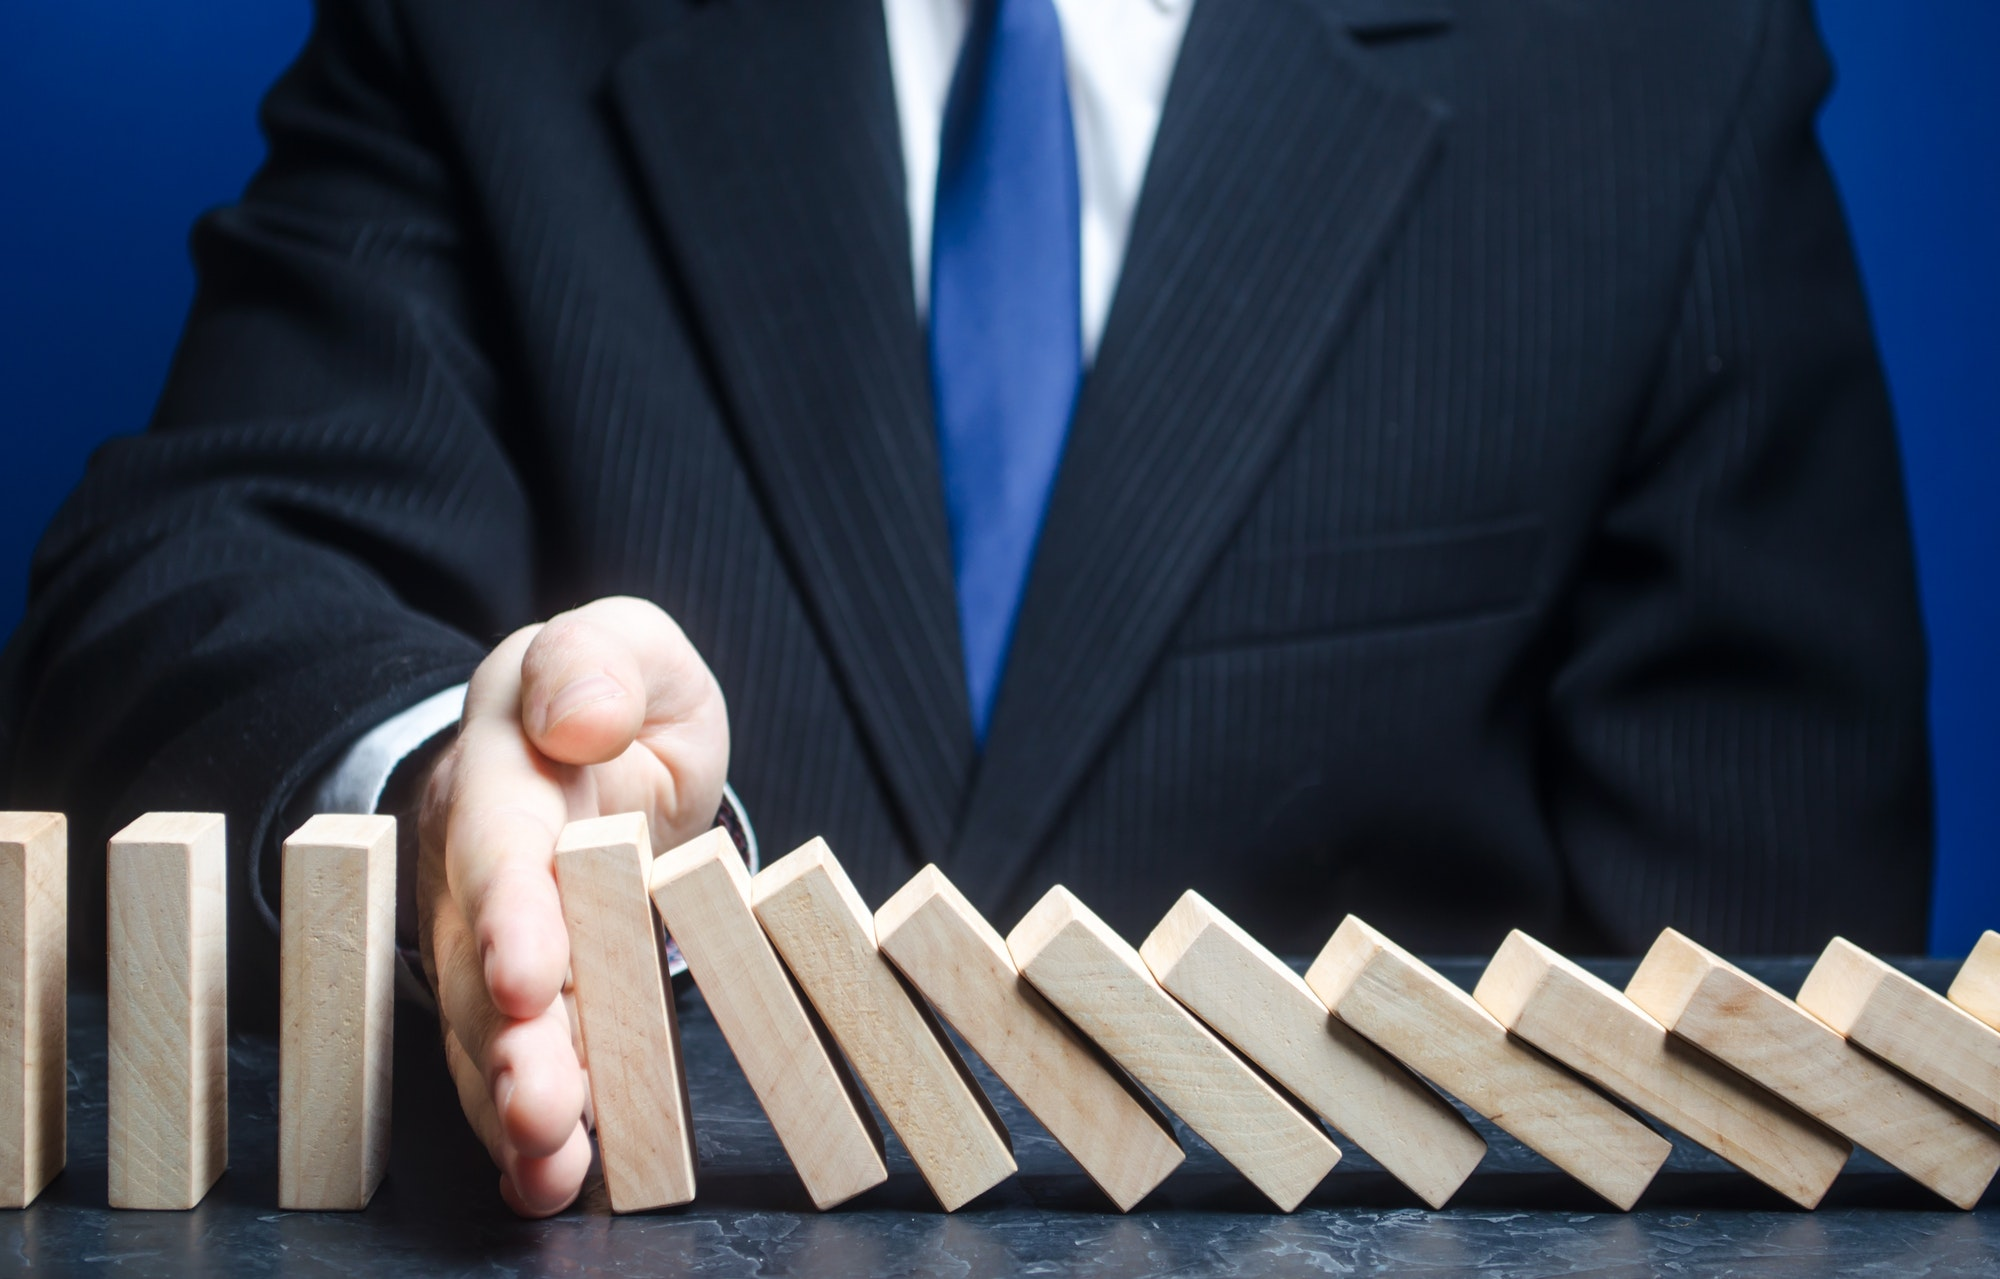 entreprises-difficulte-restructuring-gamme-services-agn-avocats.jpg